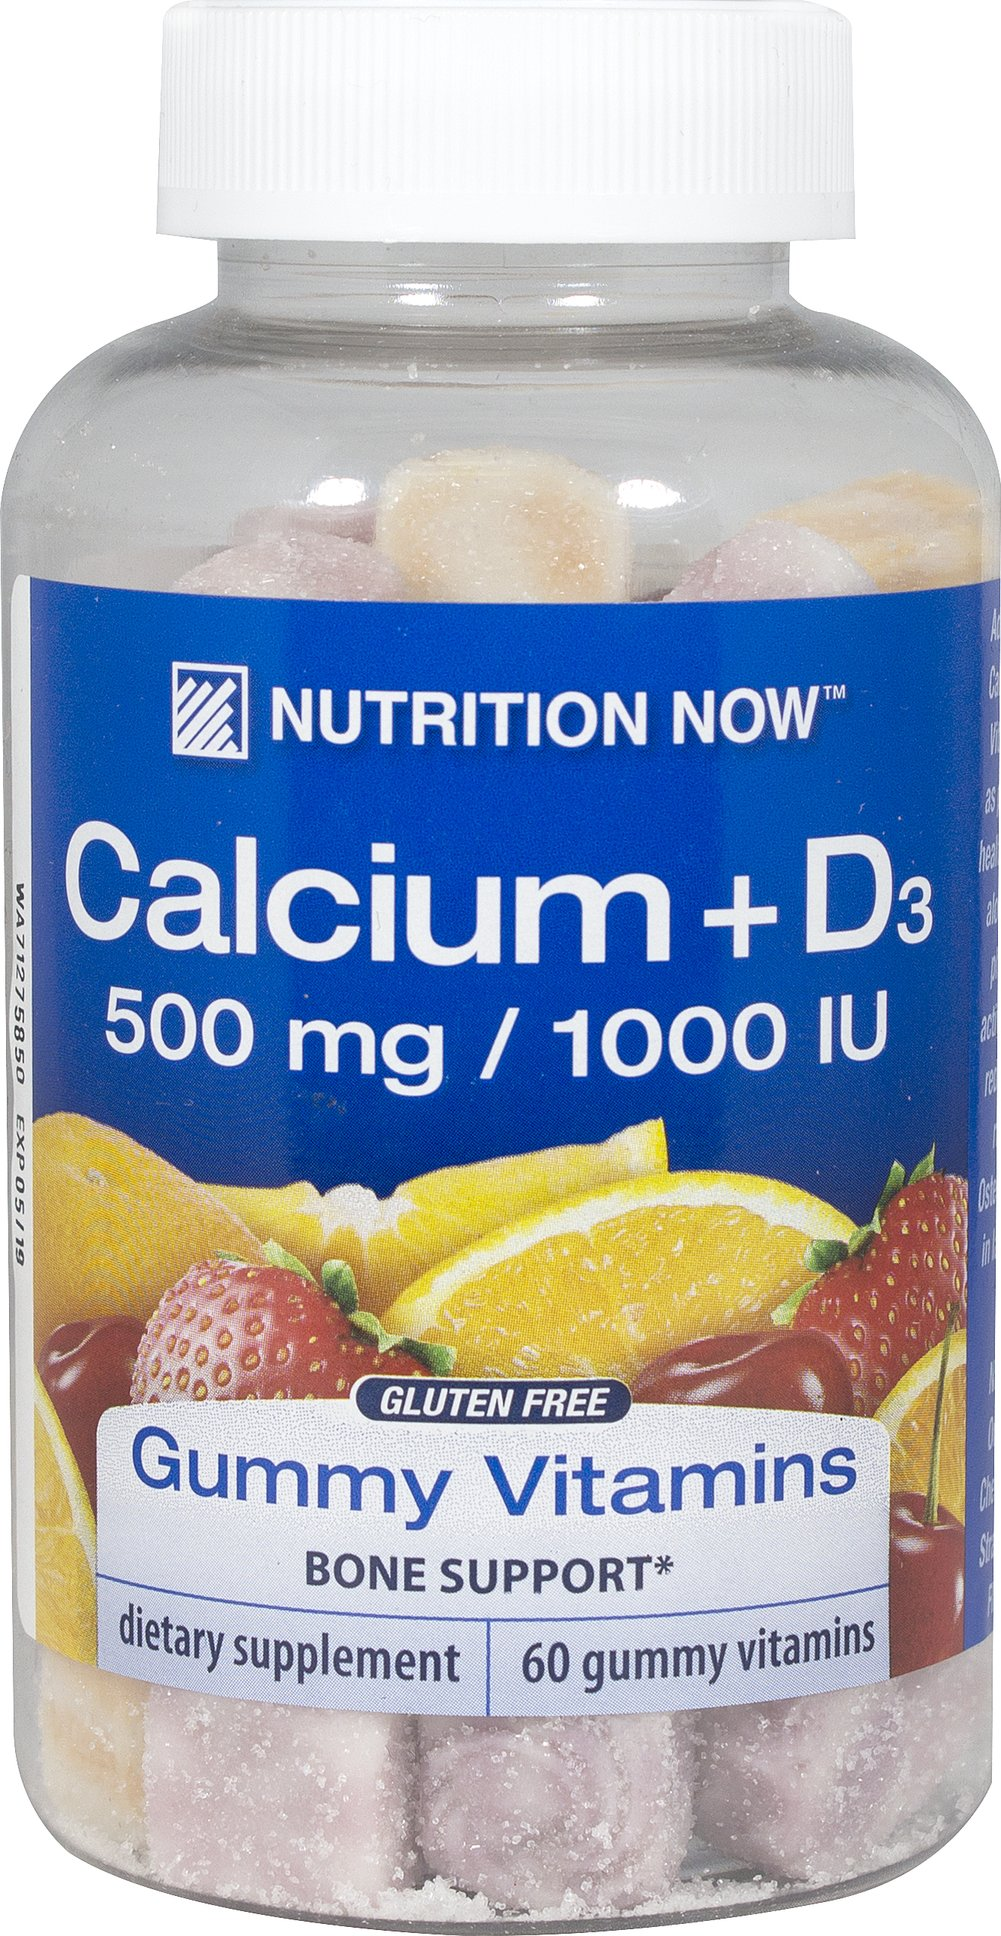 Calcium Gummy Vitamins  60 Gummies  $6.99